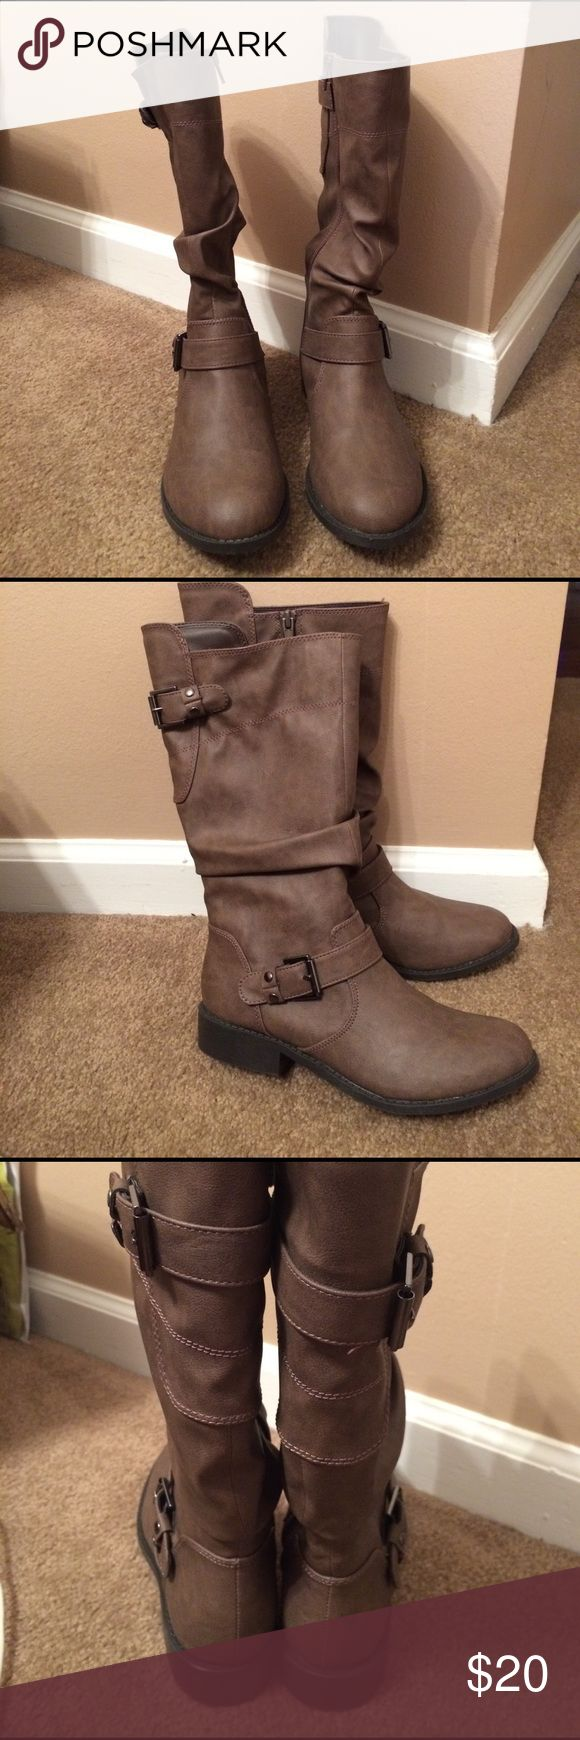 Girls Boots Brand new. Never worn. Girls brown boots. Size 4 by Cupcake Couture. Cupcake Couture Shoes Boots